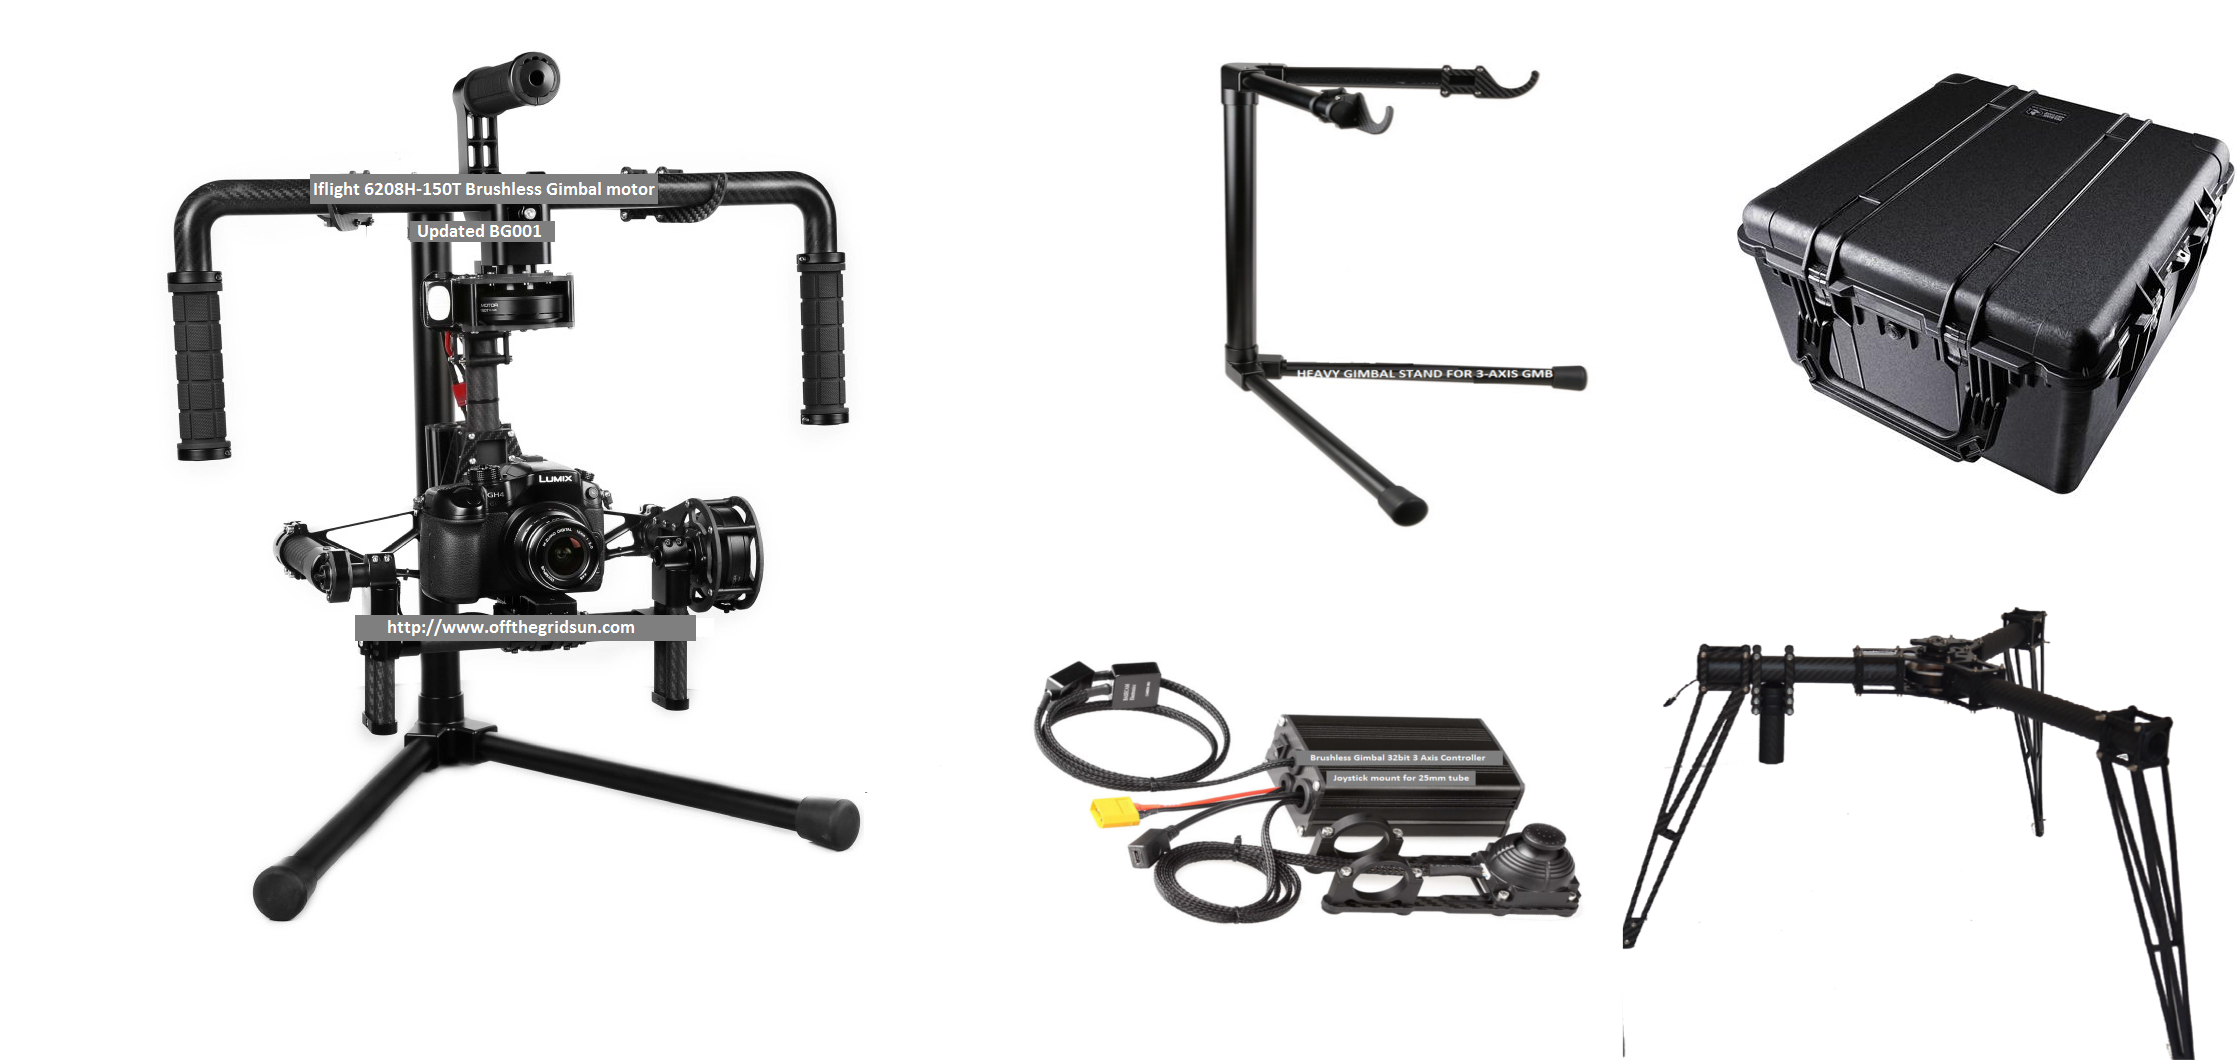 CINESTAR 3 Axis Brushless GIMBAL system Steadicam & LANDING GEAR